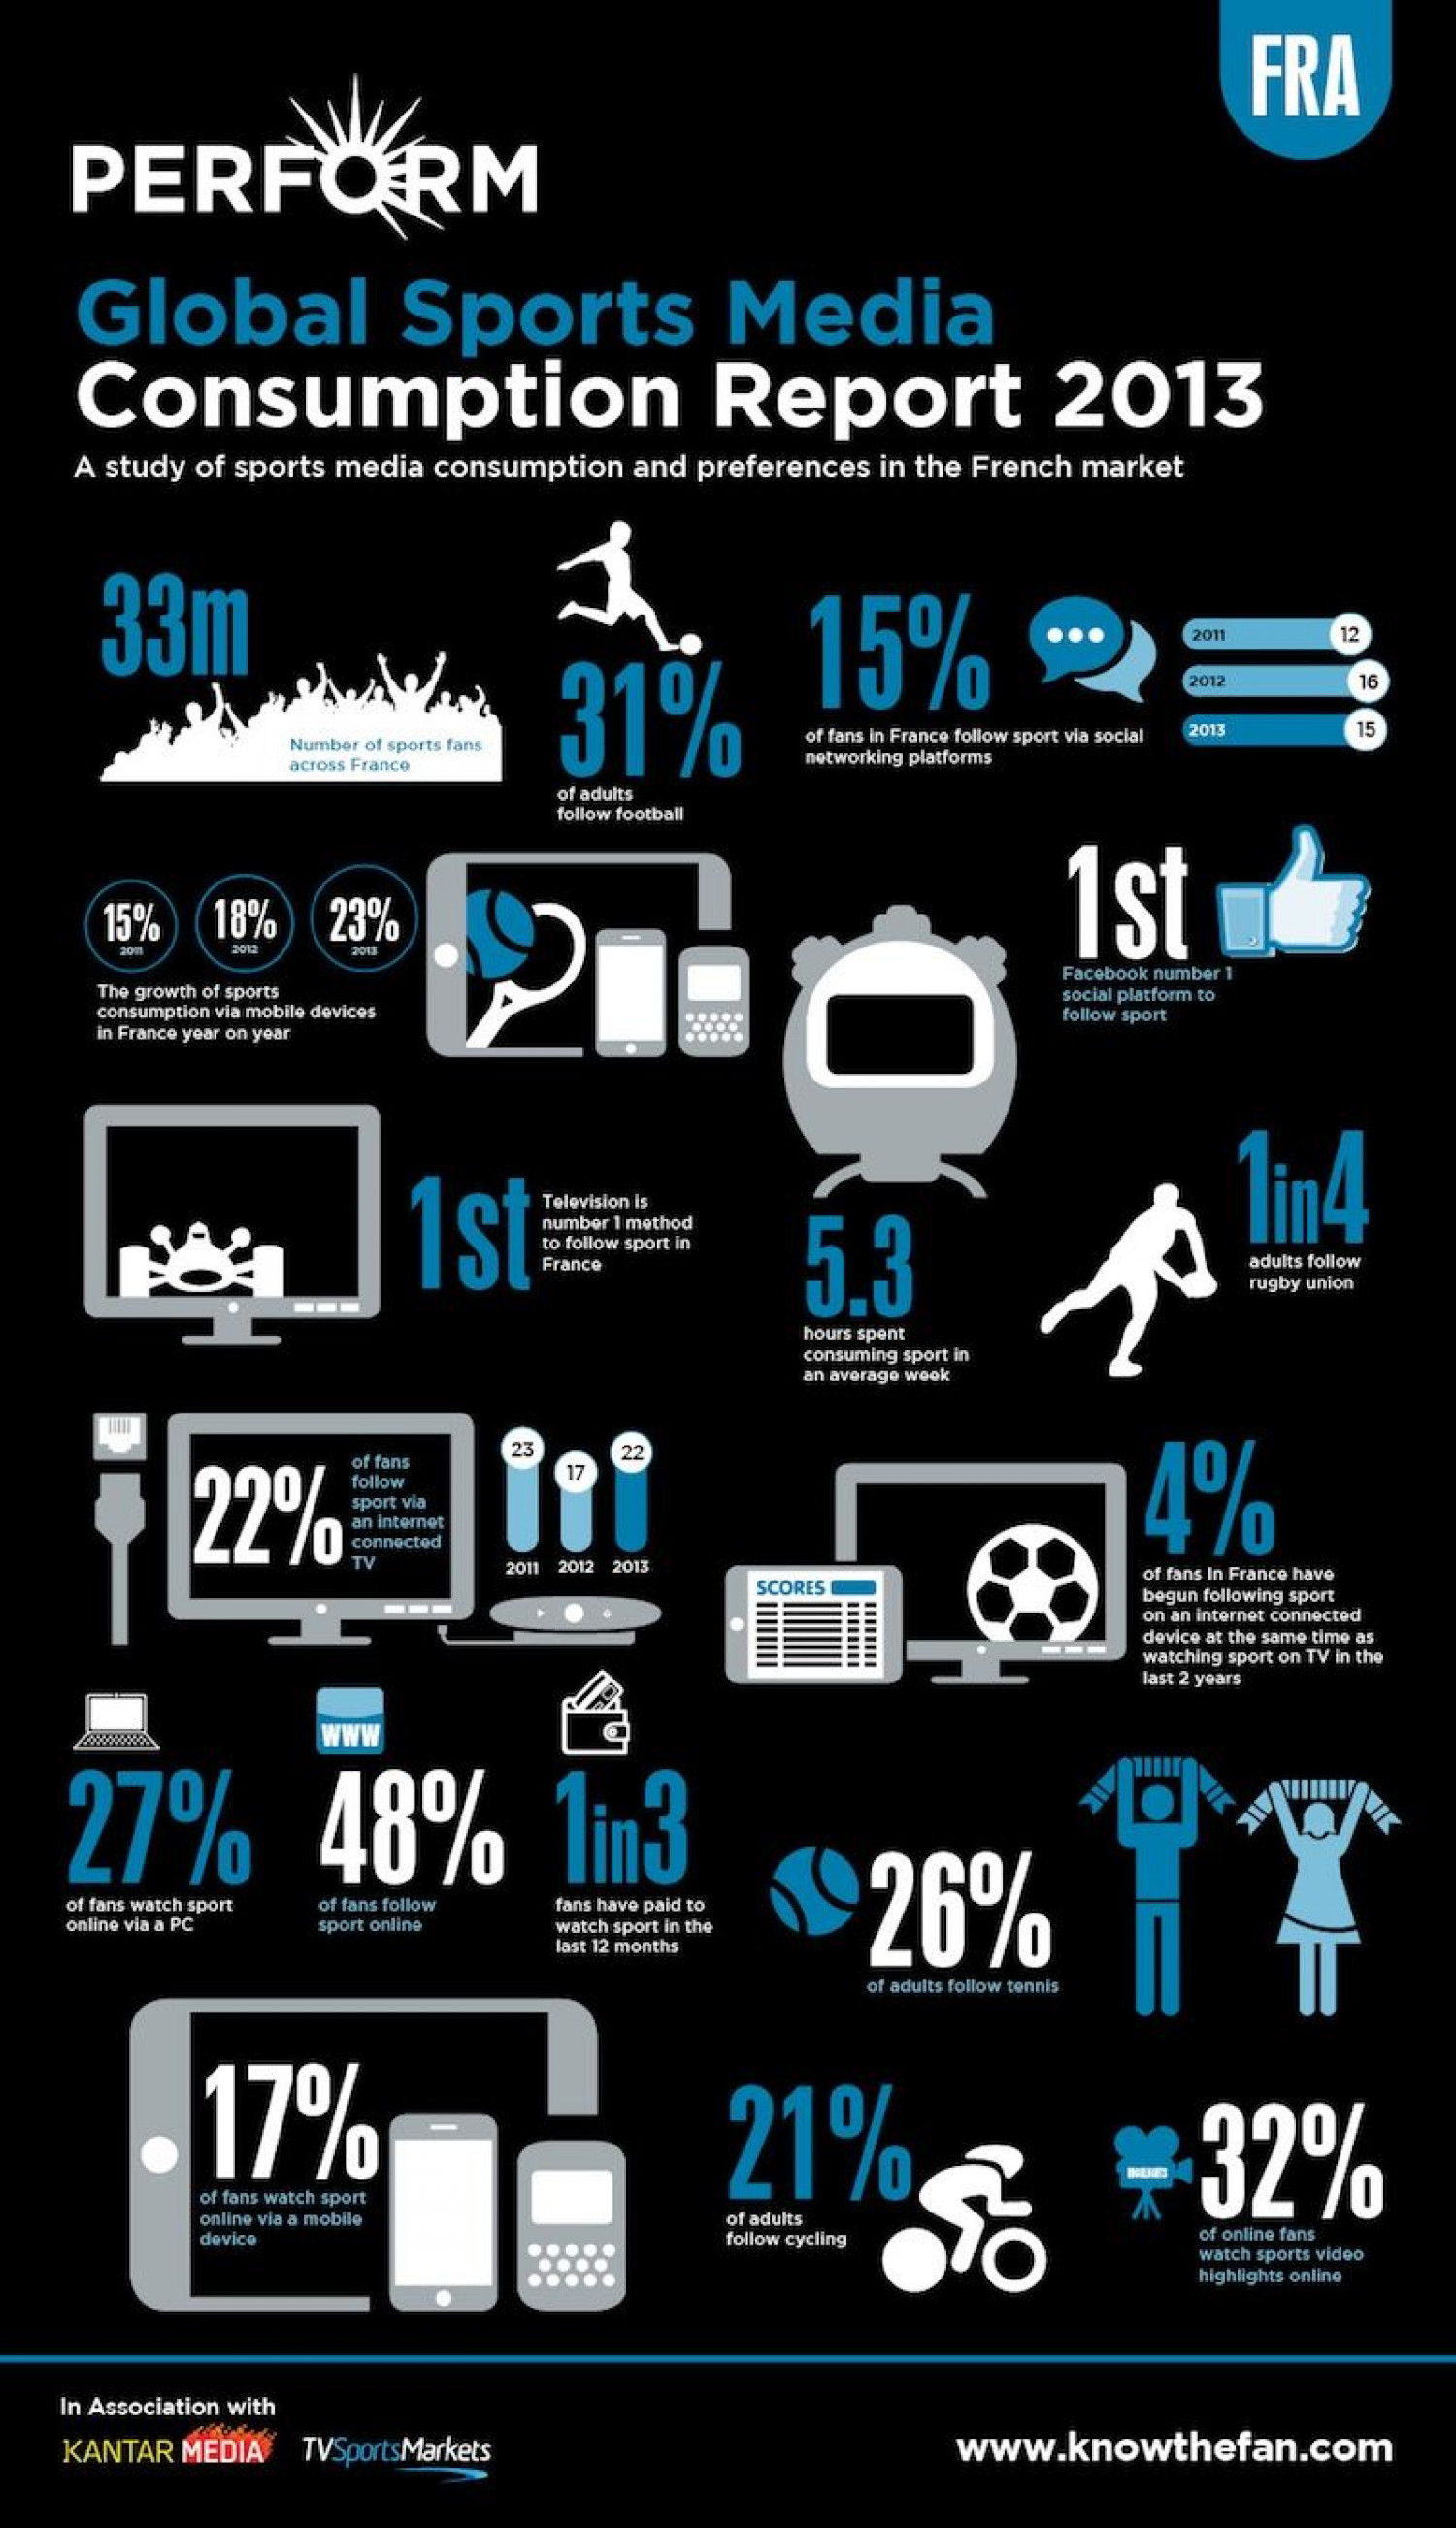 Global Sports Media Consumption Report 2013 Infographic